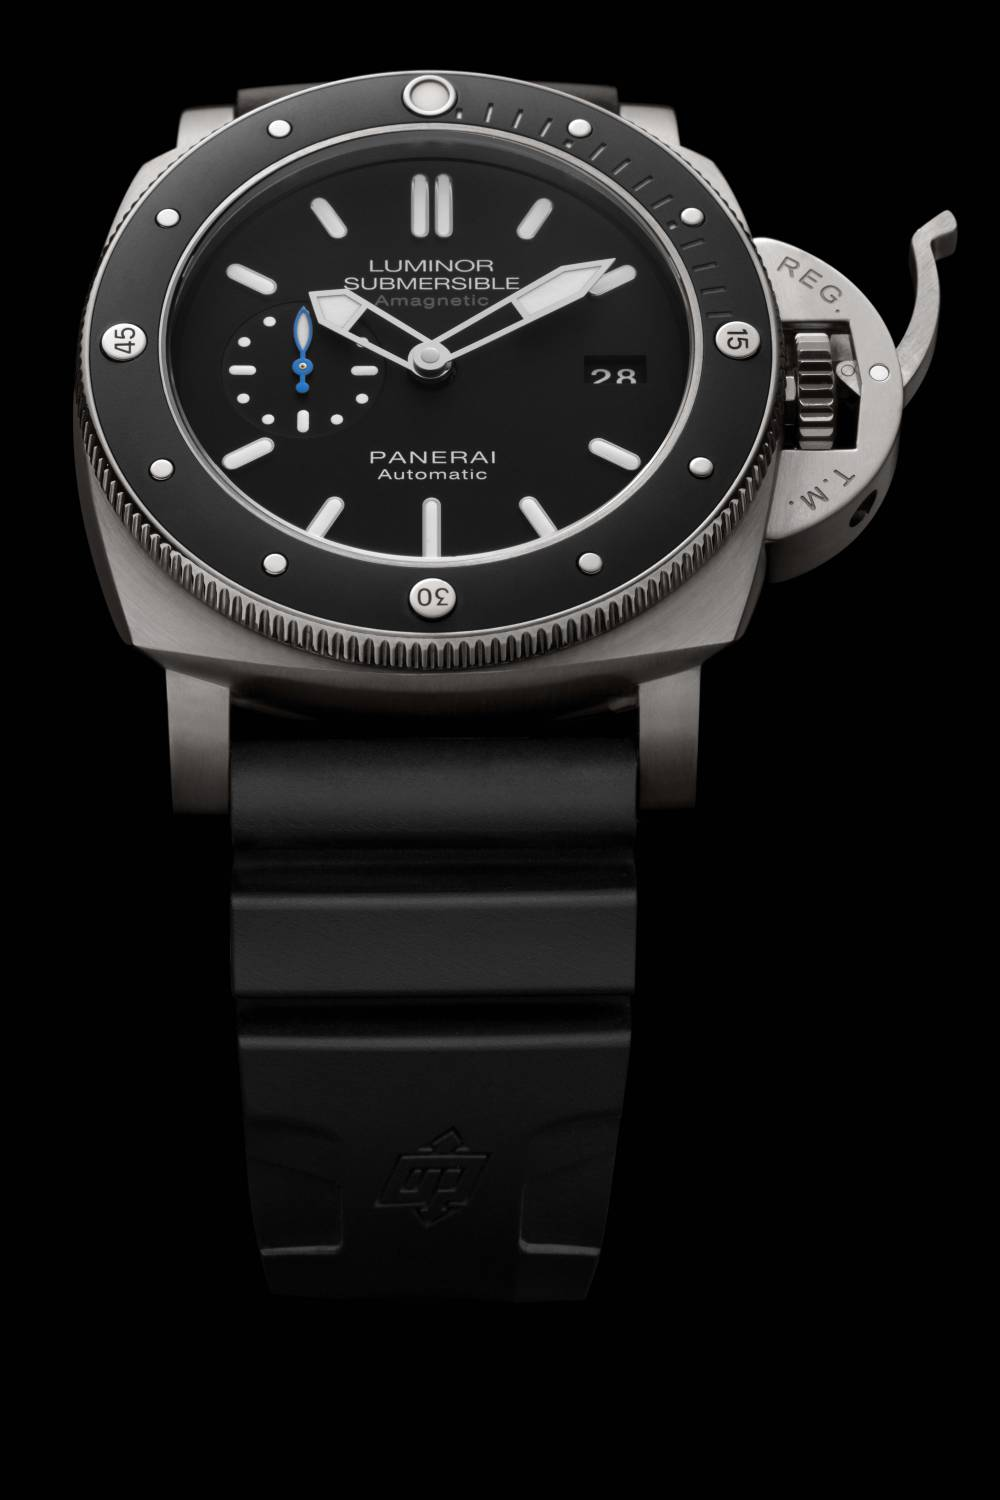 Panerai-Luminor-Submersible-1950-PAM01389-1.jpg